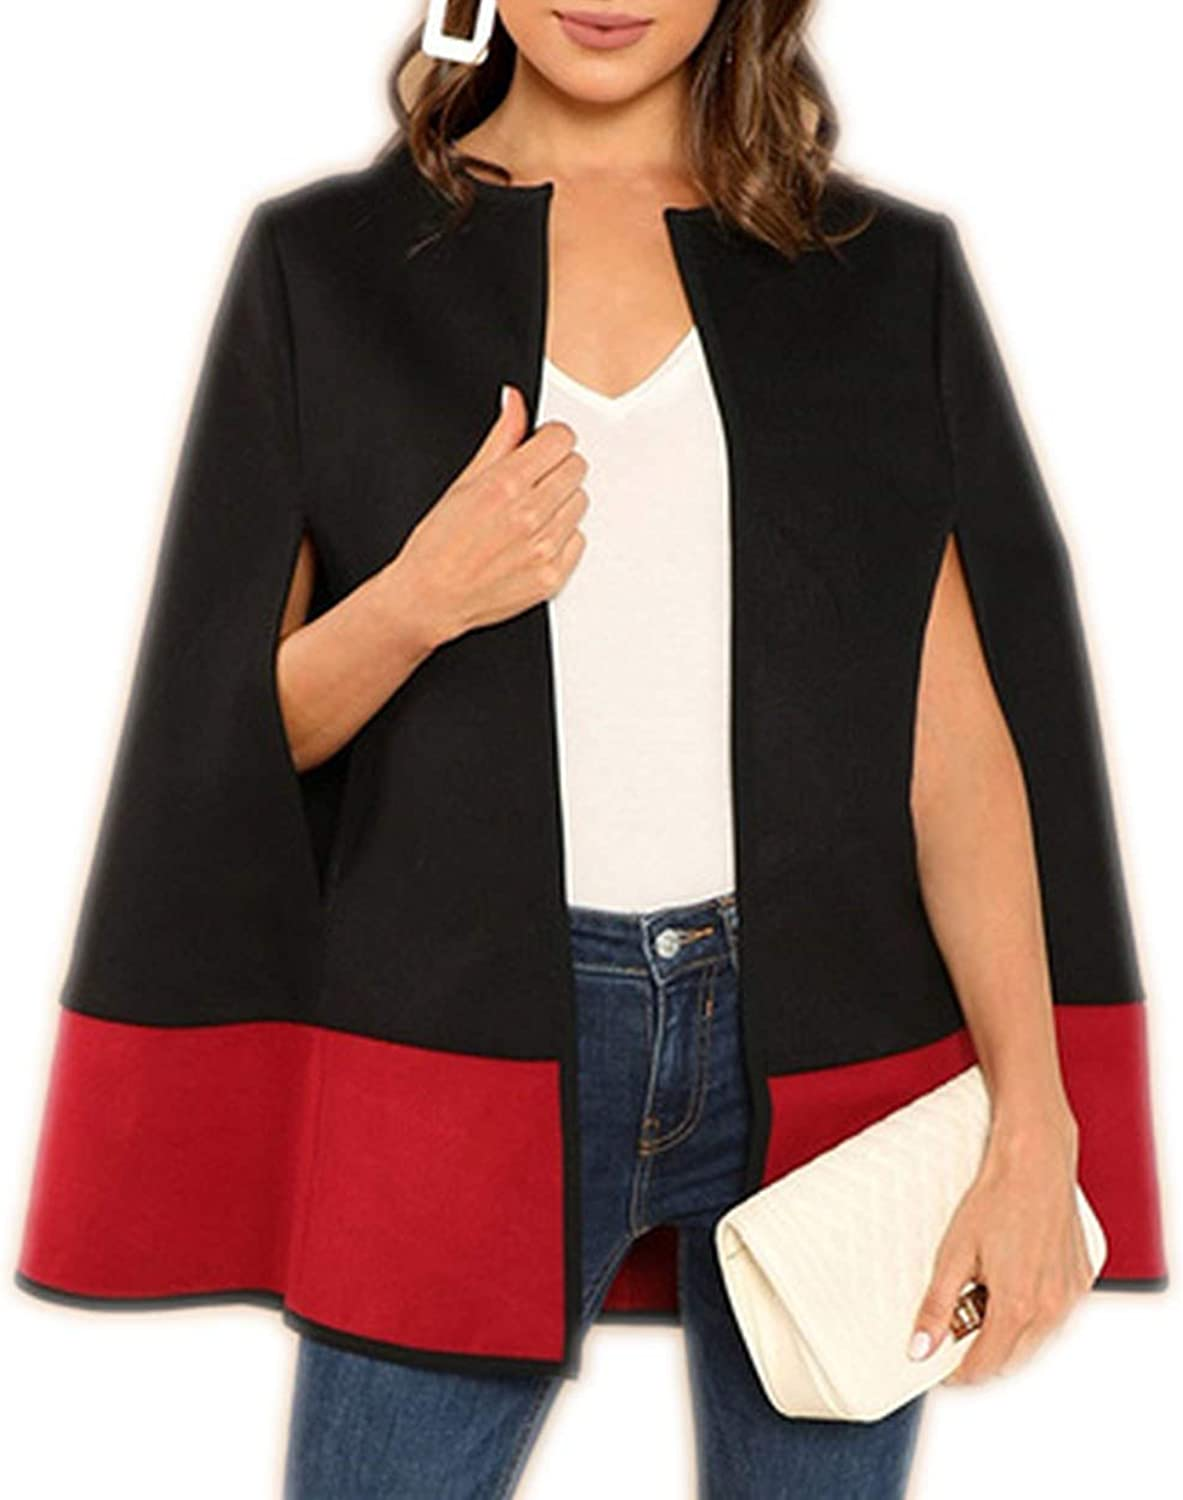 cant be satisfied Weekend Casual Black Round Neck Two Tone Open Front Cloak Sleeve Cape Coat Lady Outercoat New,Black,L